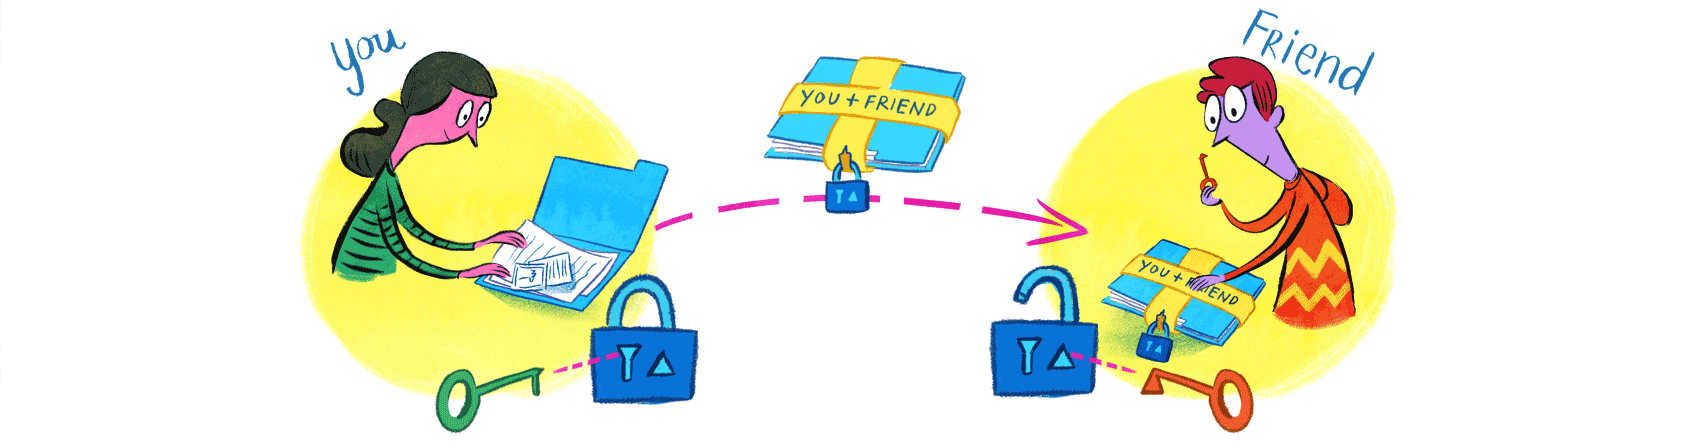 Illustration of a key exchange protocol